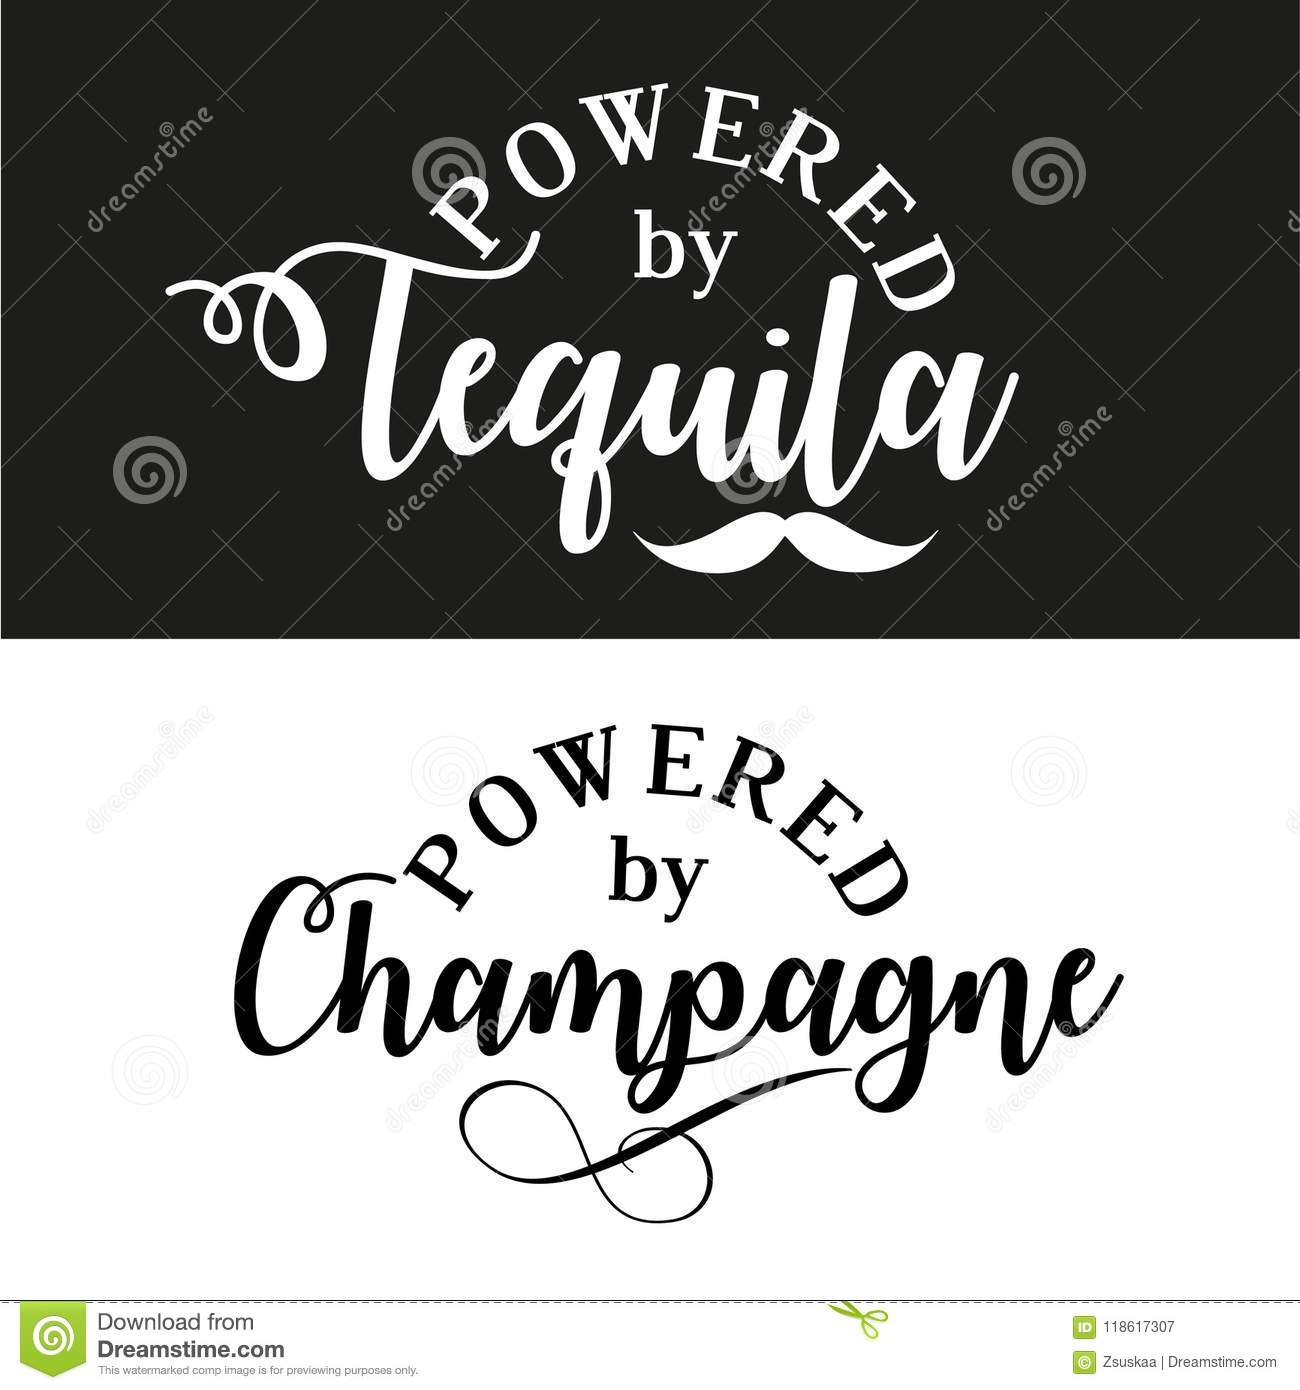 Powered by tequila/champagne.